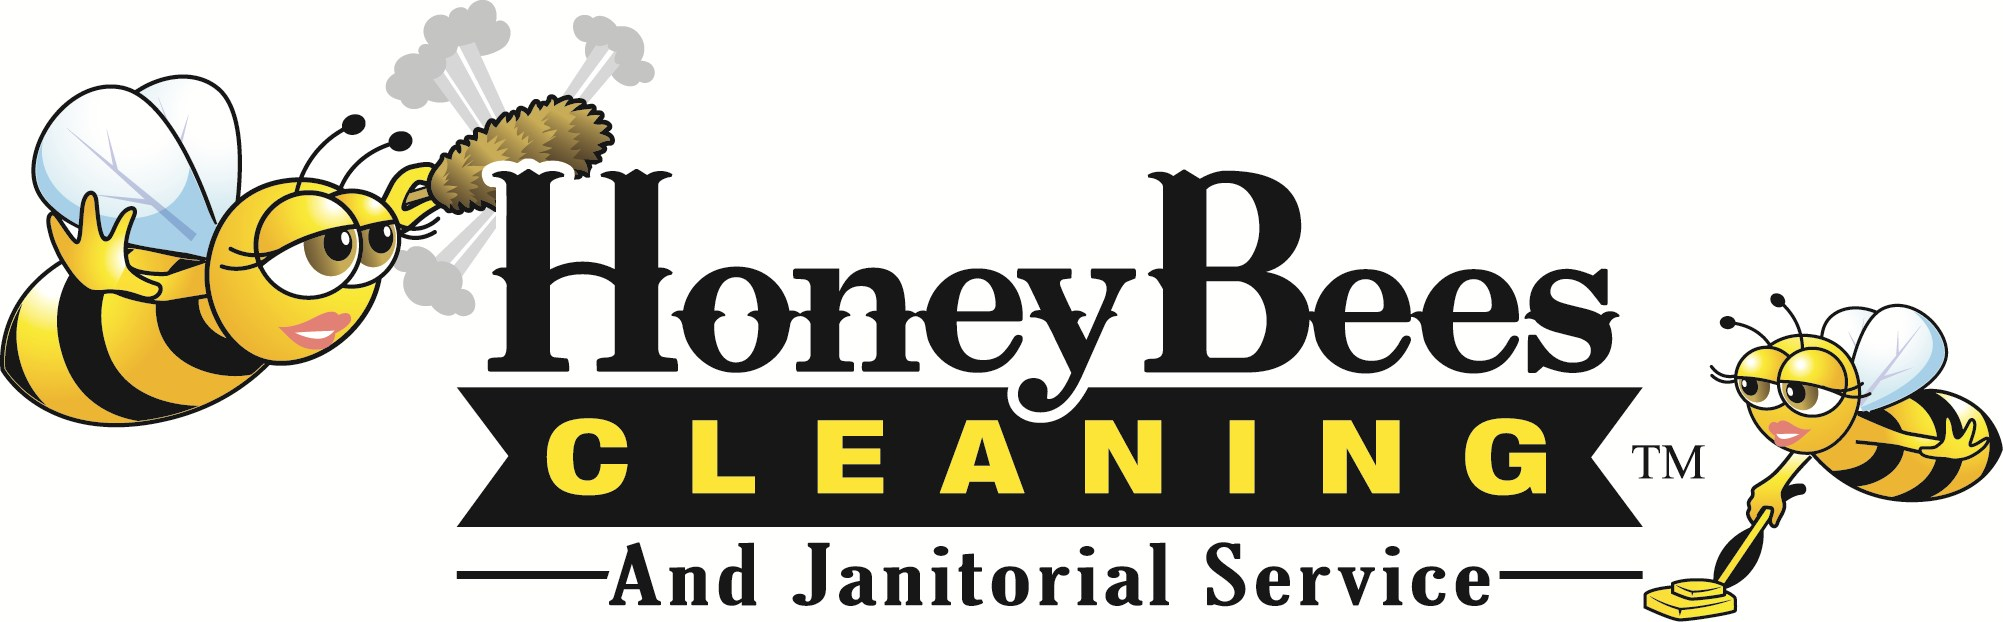 Honey Bees Cleaning & Janitorial Service TM logo